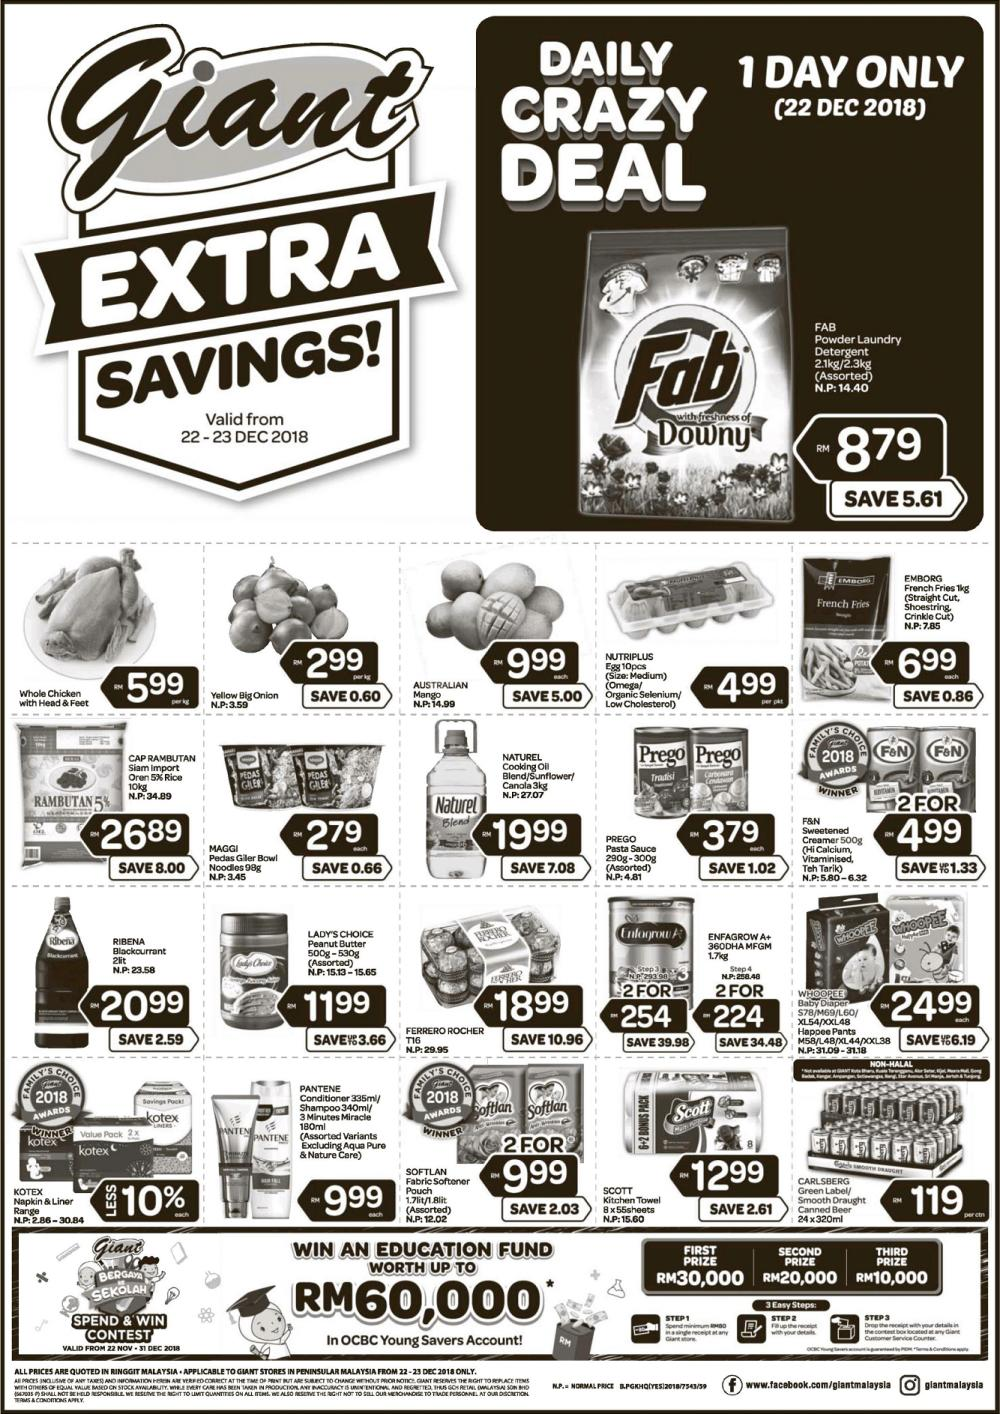 Giant Extra Savings Promotion (22 December 2018 - 23 December 2018)